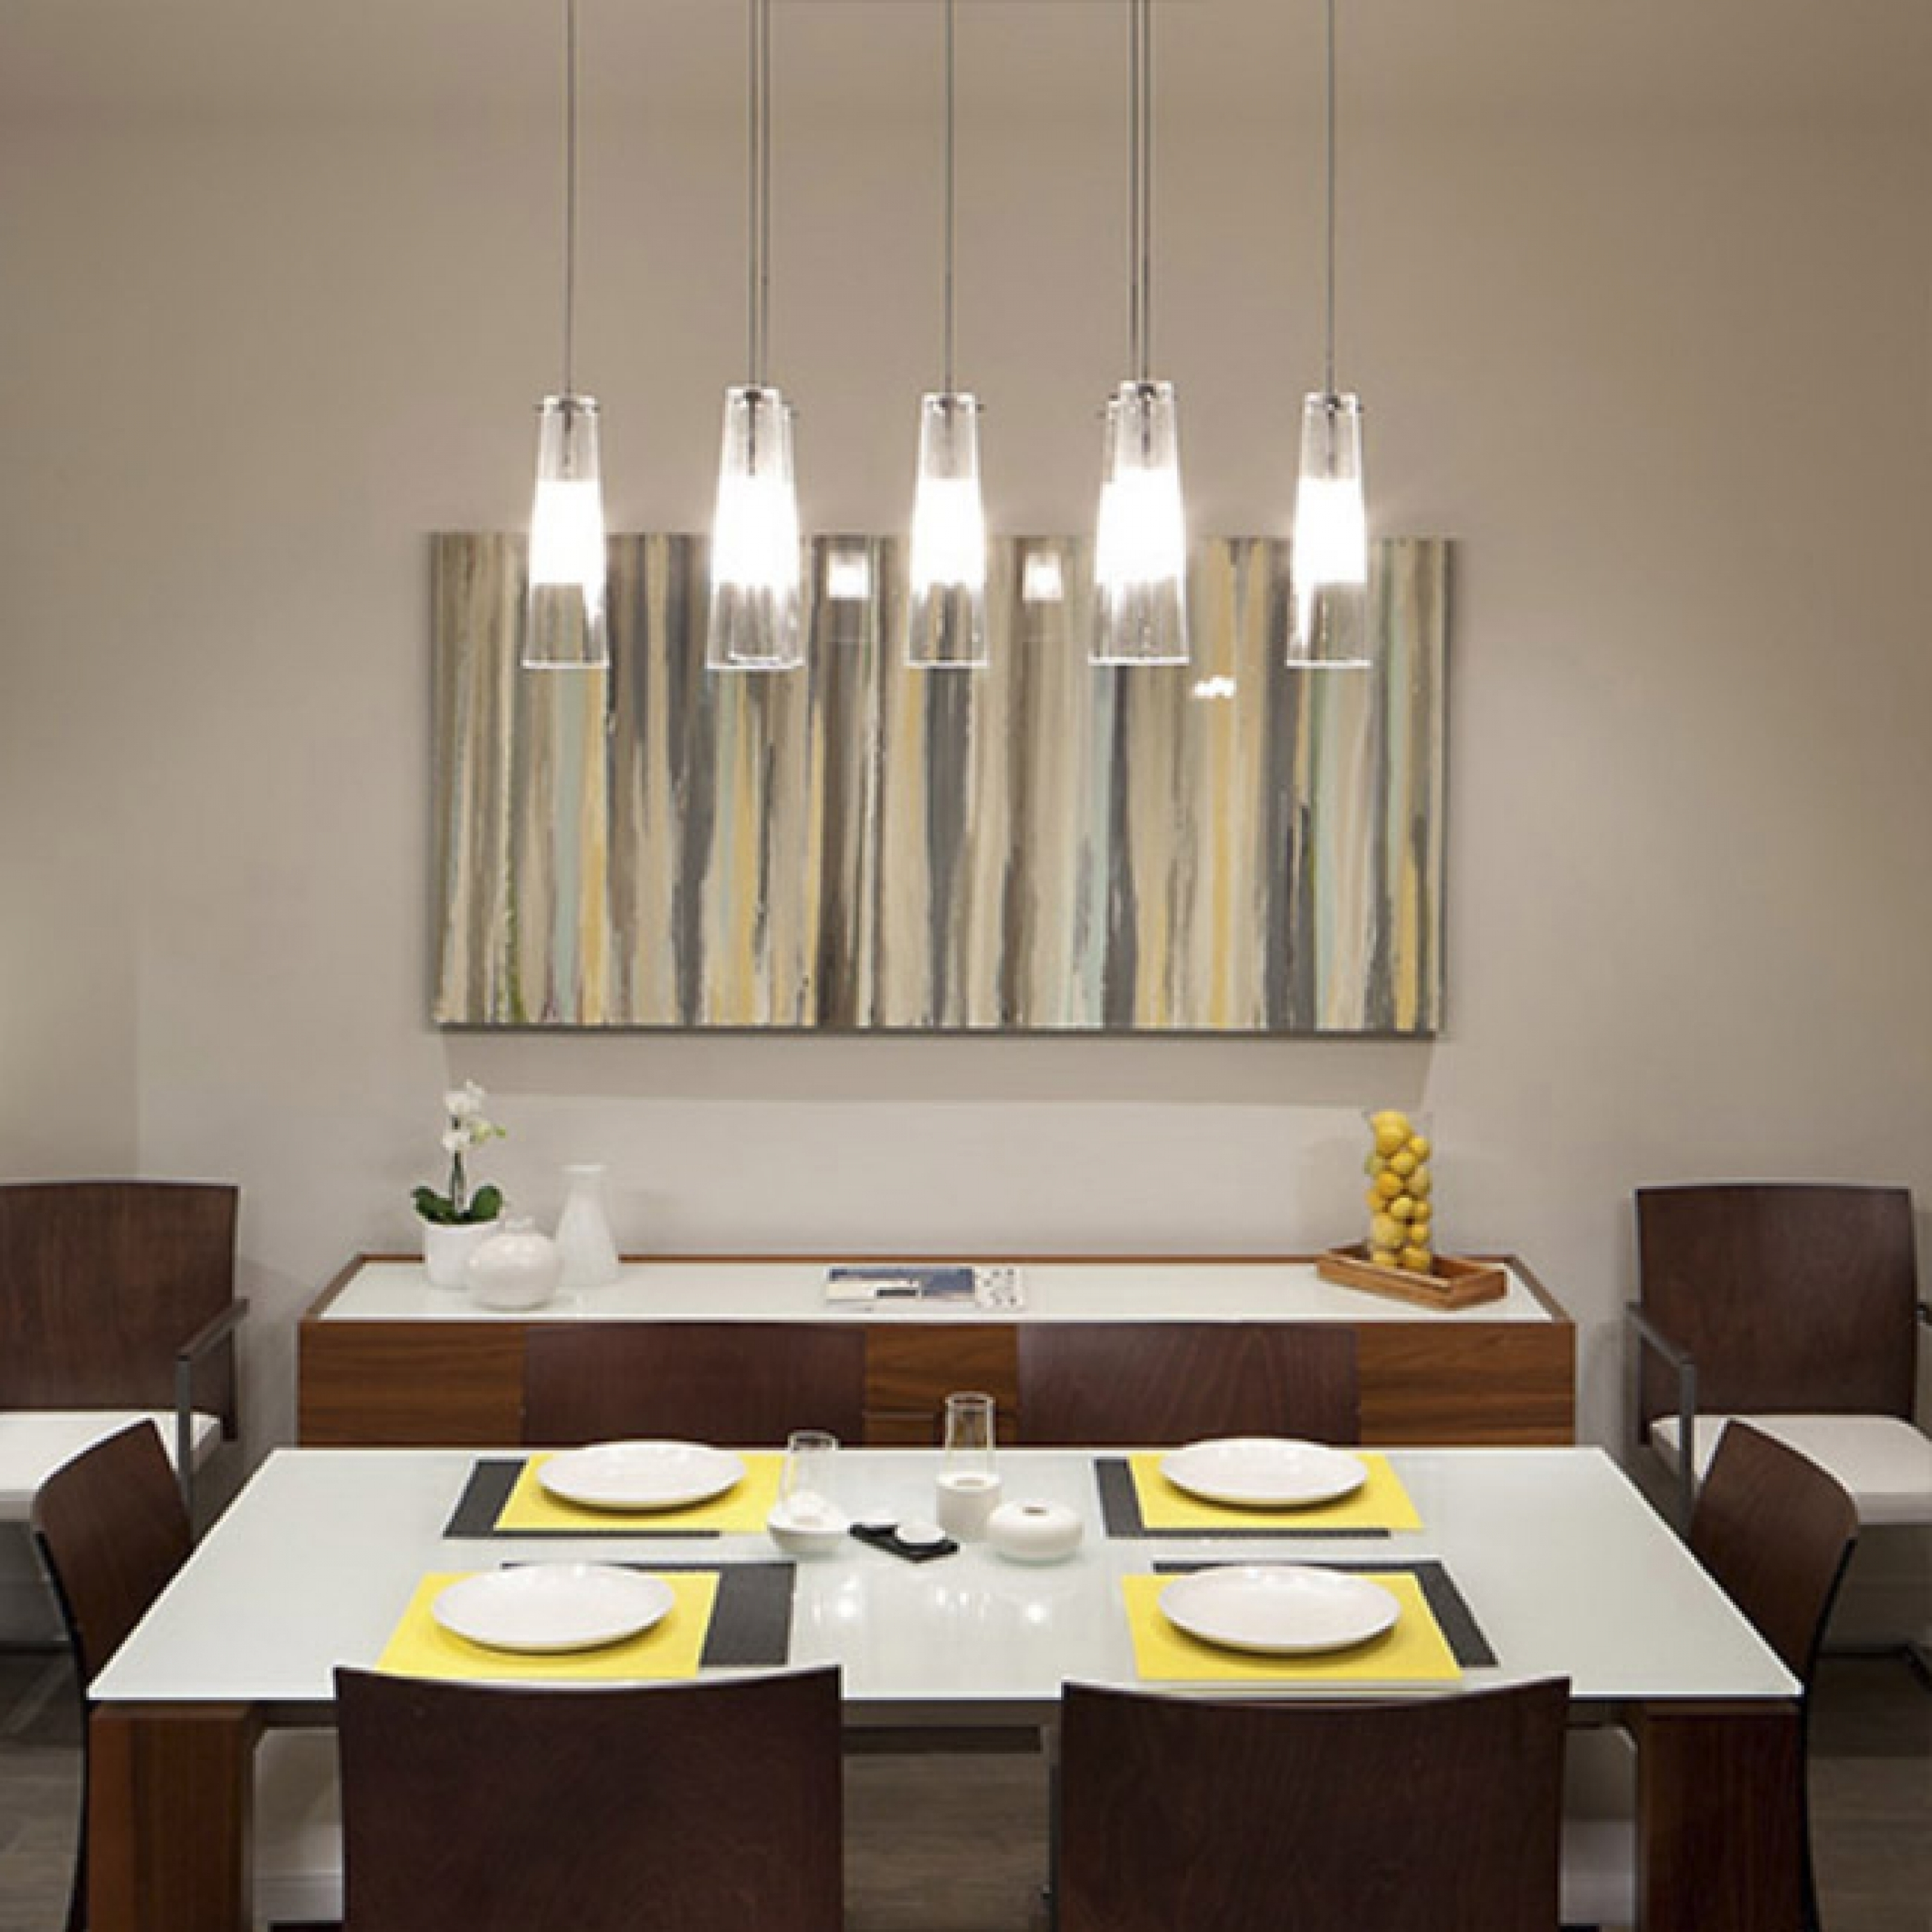 Most Up To Date Image 9104 From Post: Kitchen Table Lighting – With Above Also Pertaining To Over Dining Tables Lighting (View 14 of 25)